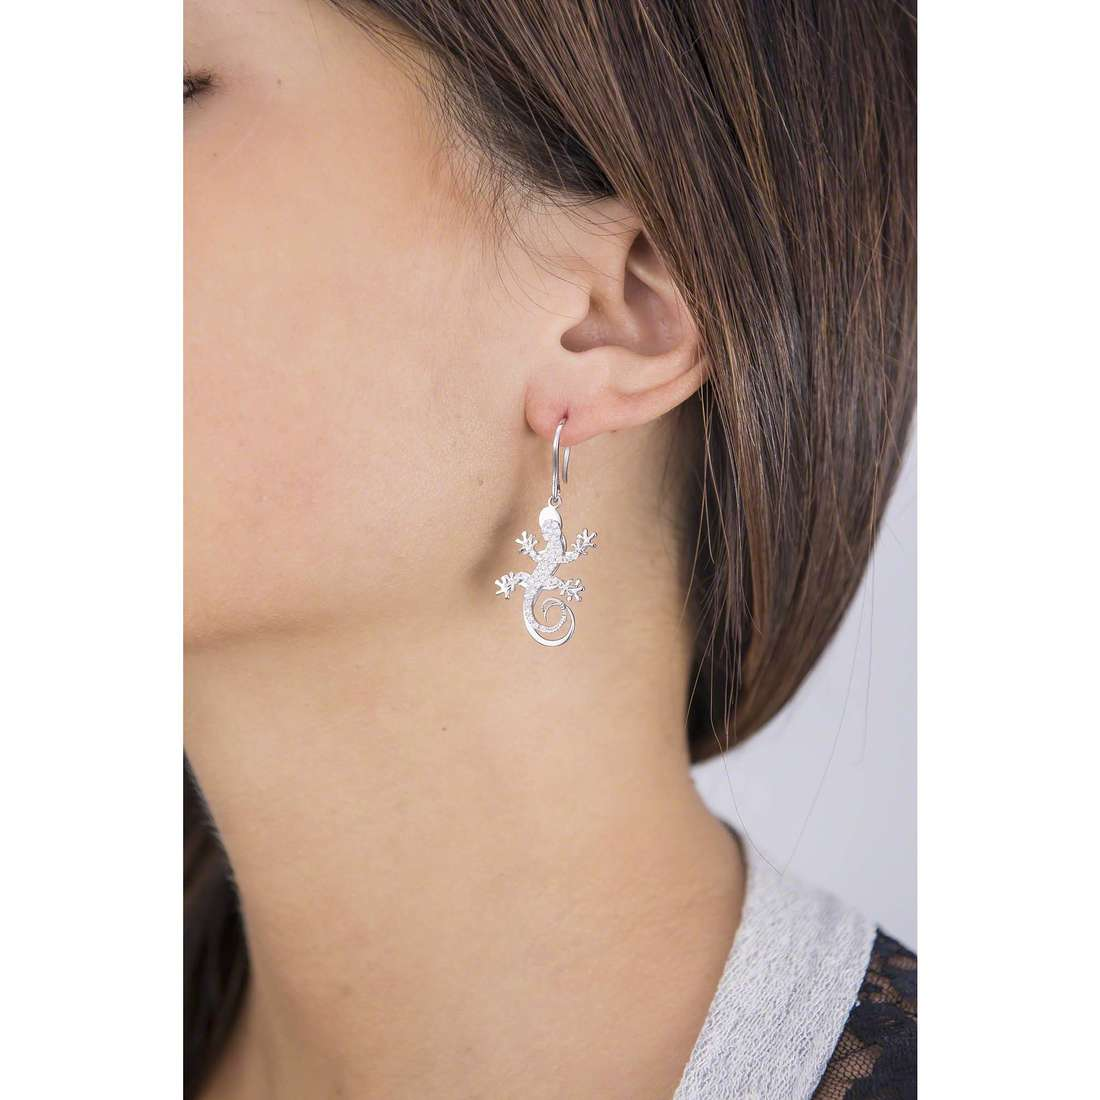 Giannotti earrings Il Geco woman GIANNOTTIGEA104 indosso